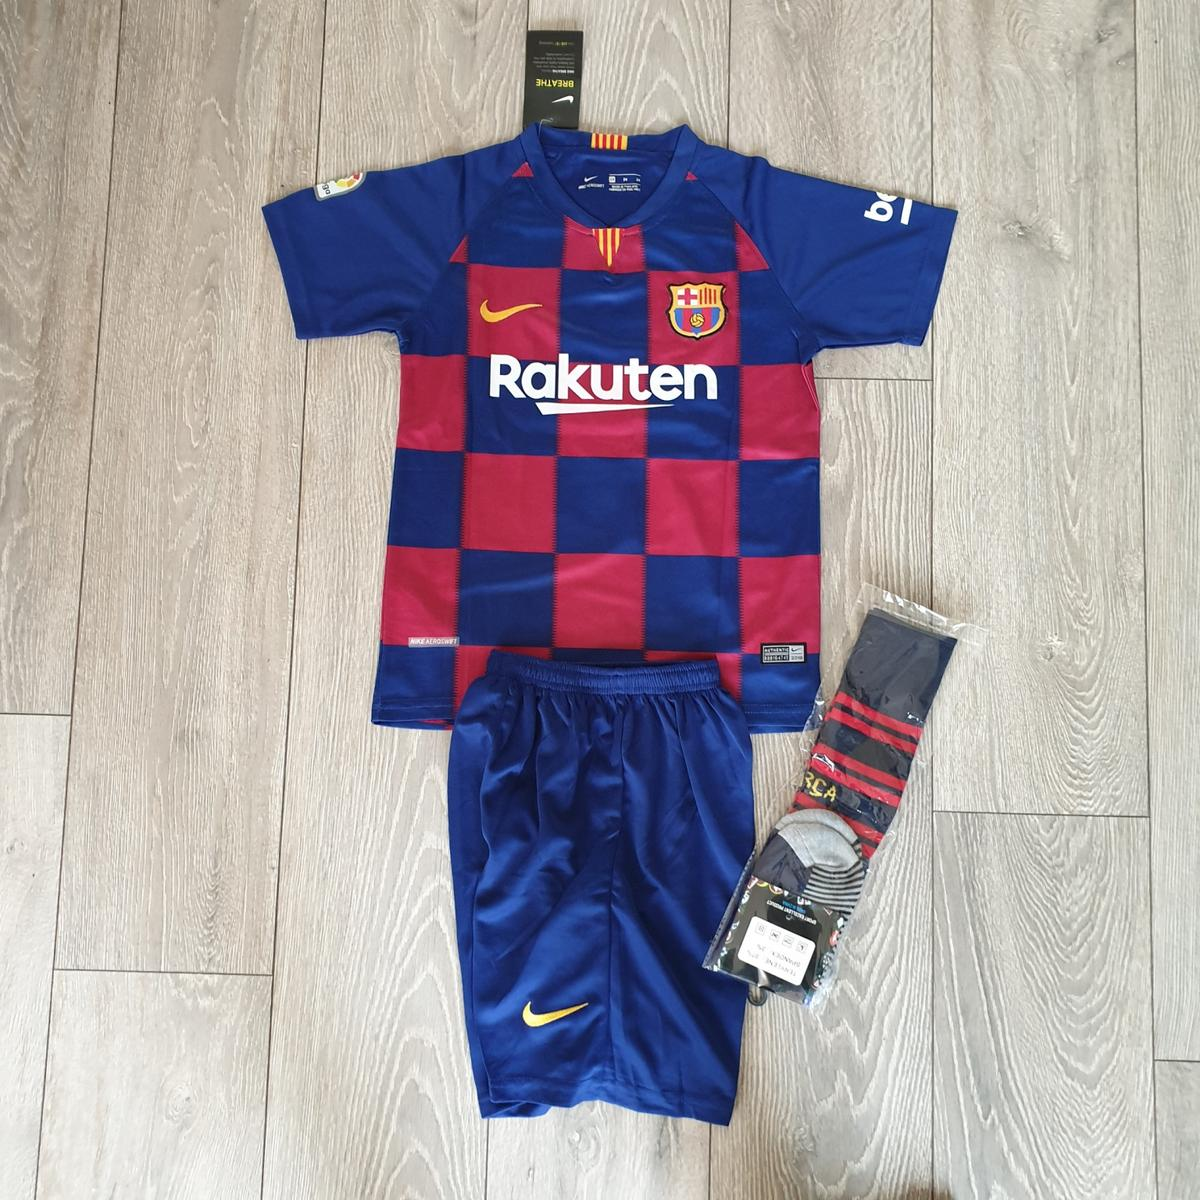 1ad5accdc72 2019 20 Barcelona football kit Messi in CH42 Wirral for £25.00 for ...